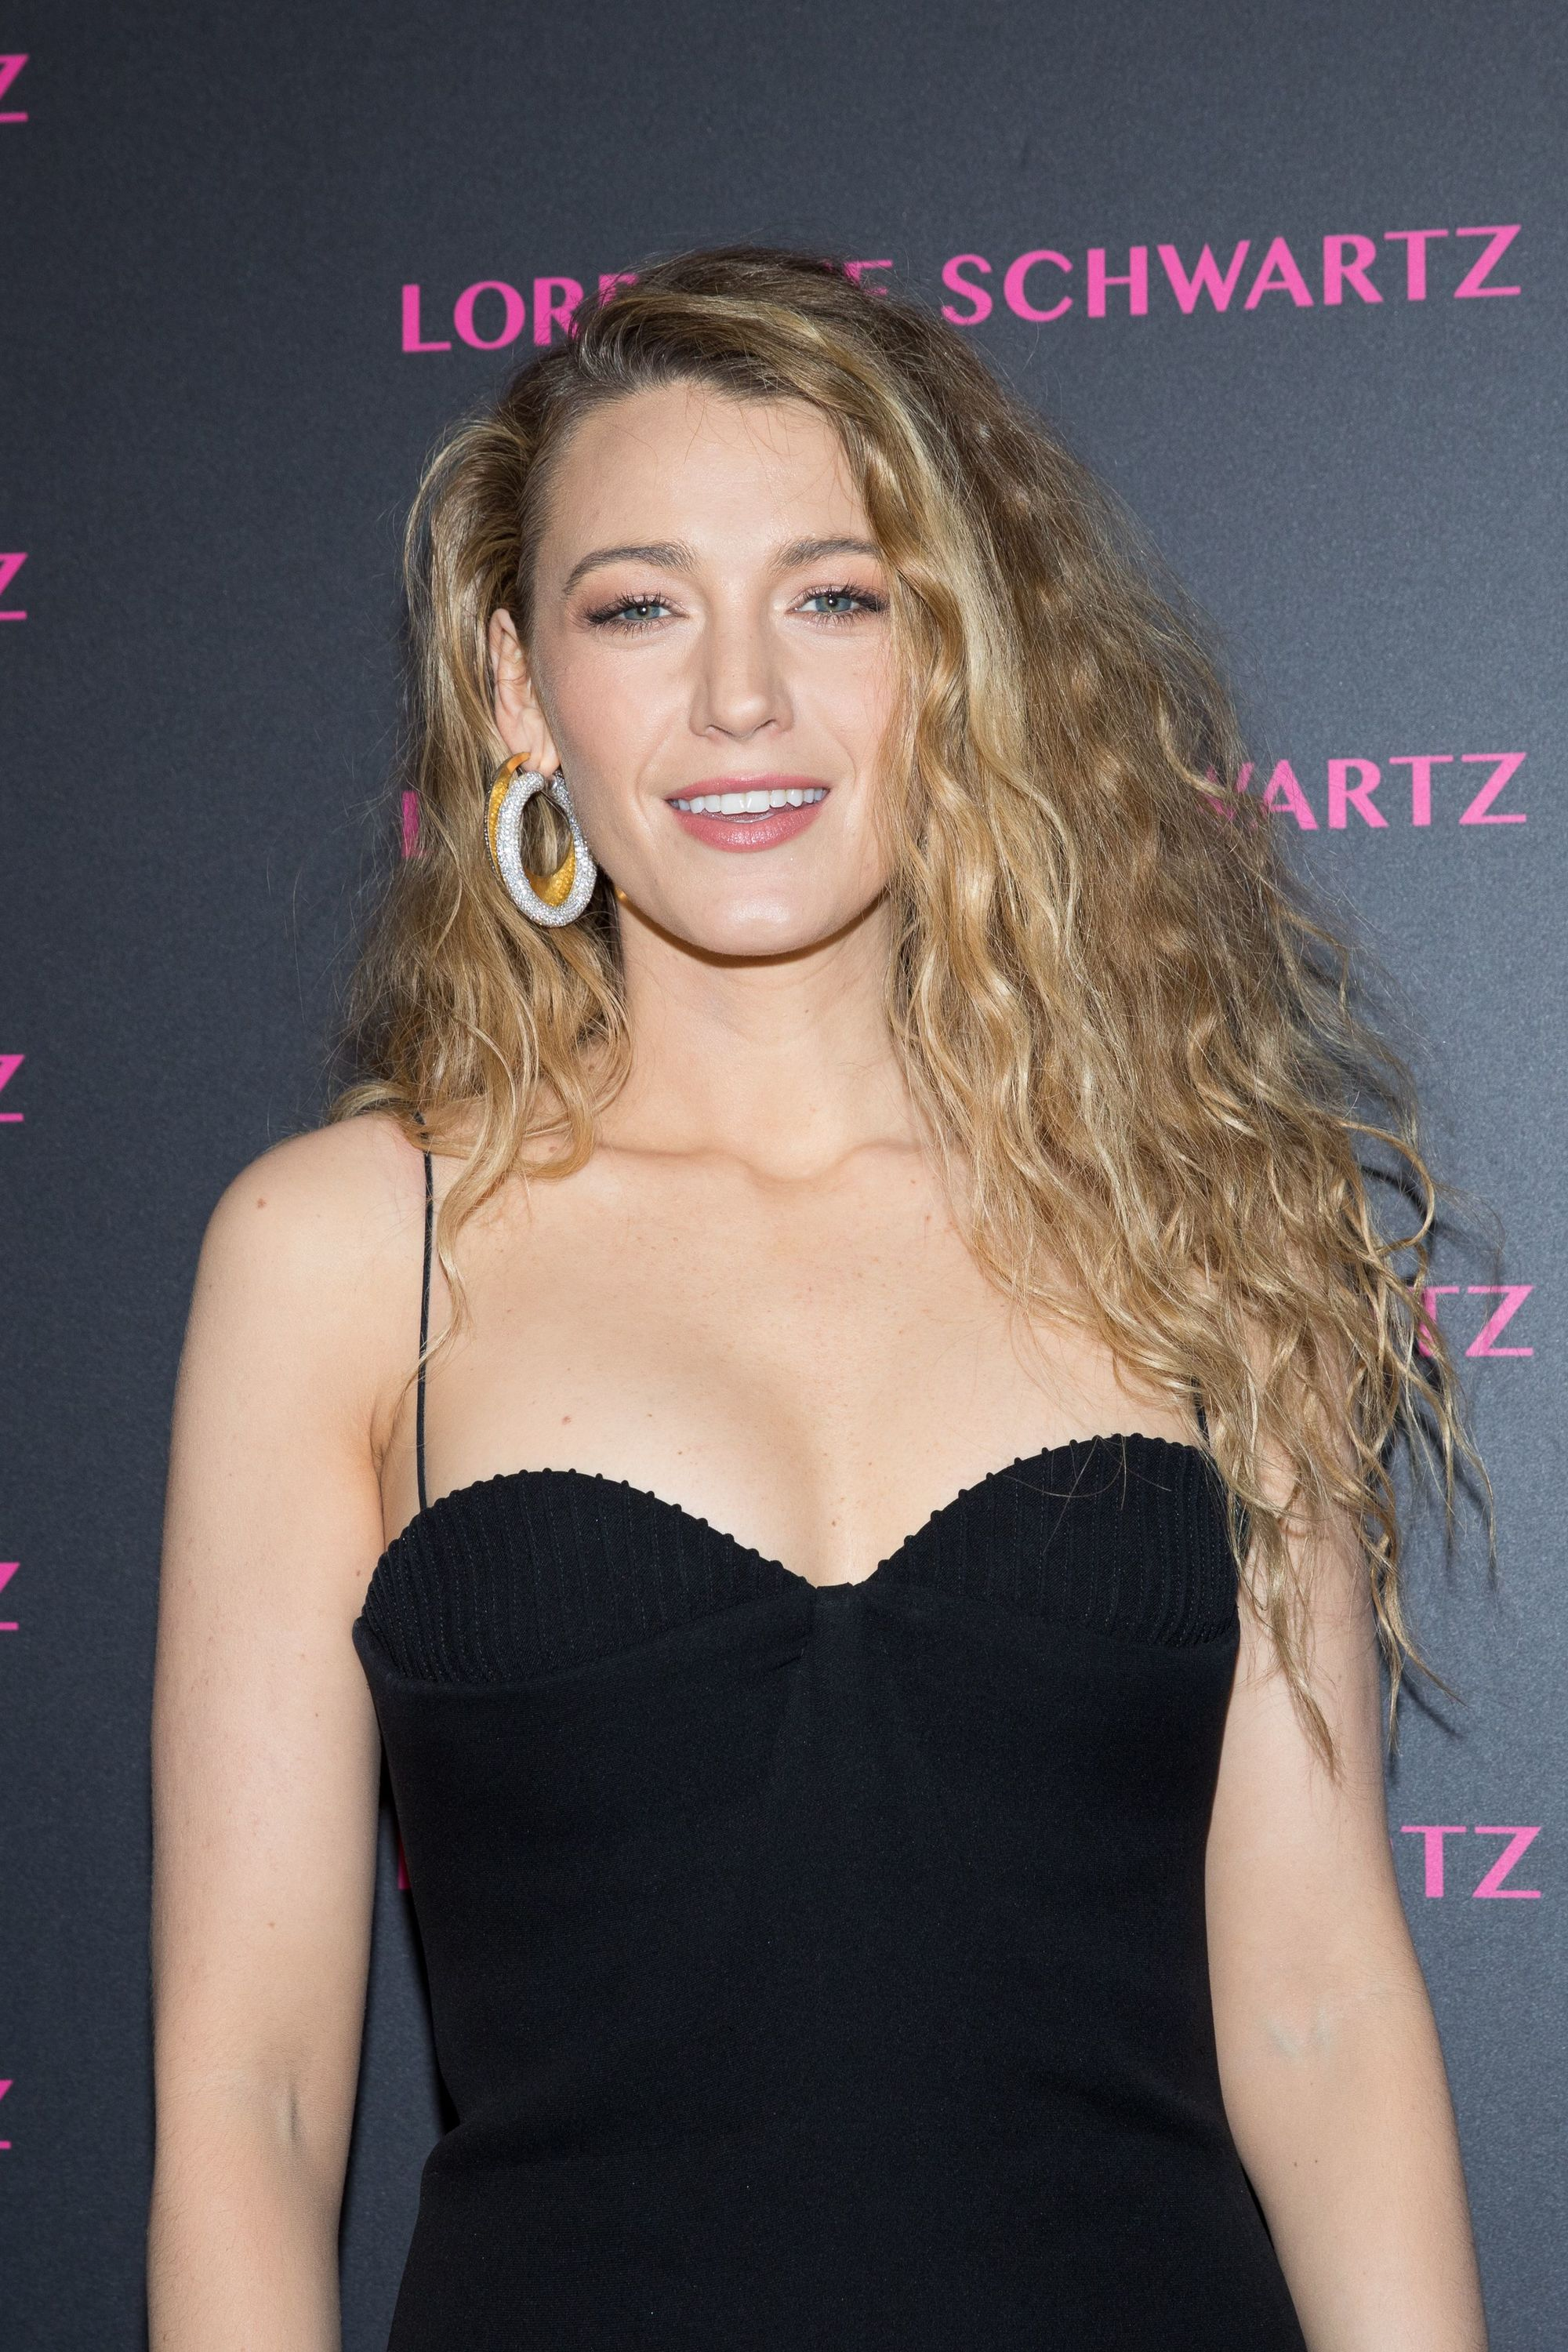 90s hairstyles: Blake Lively with Mariah Carey 90s style curls on her highlighted blonde hair